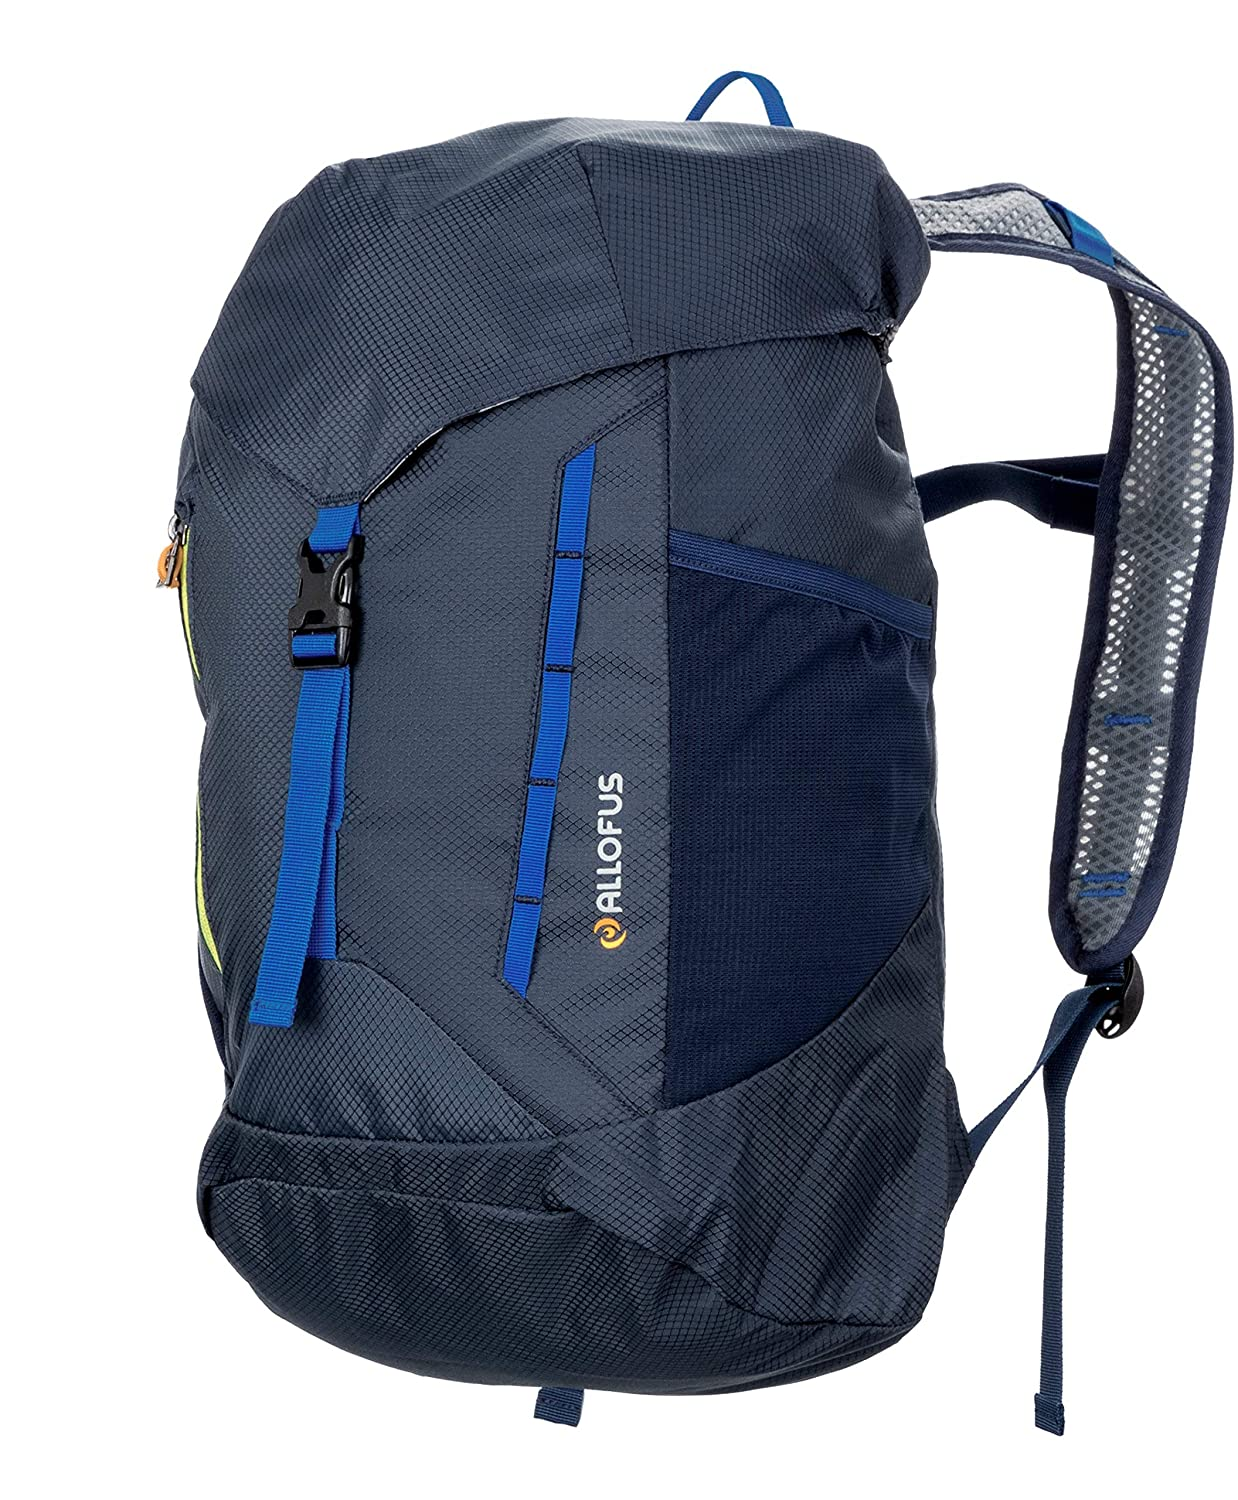 All of Us Packable Lightweight Hydration Ready Daypack Backpack Sport Blue